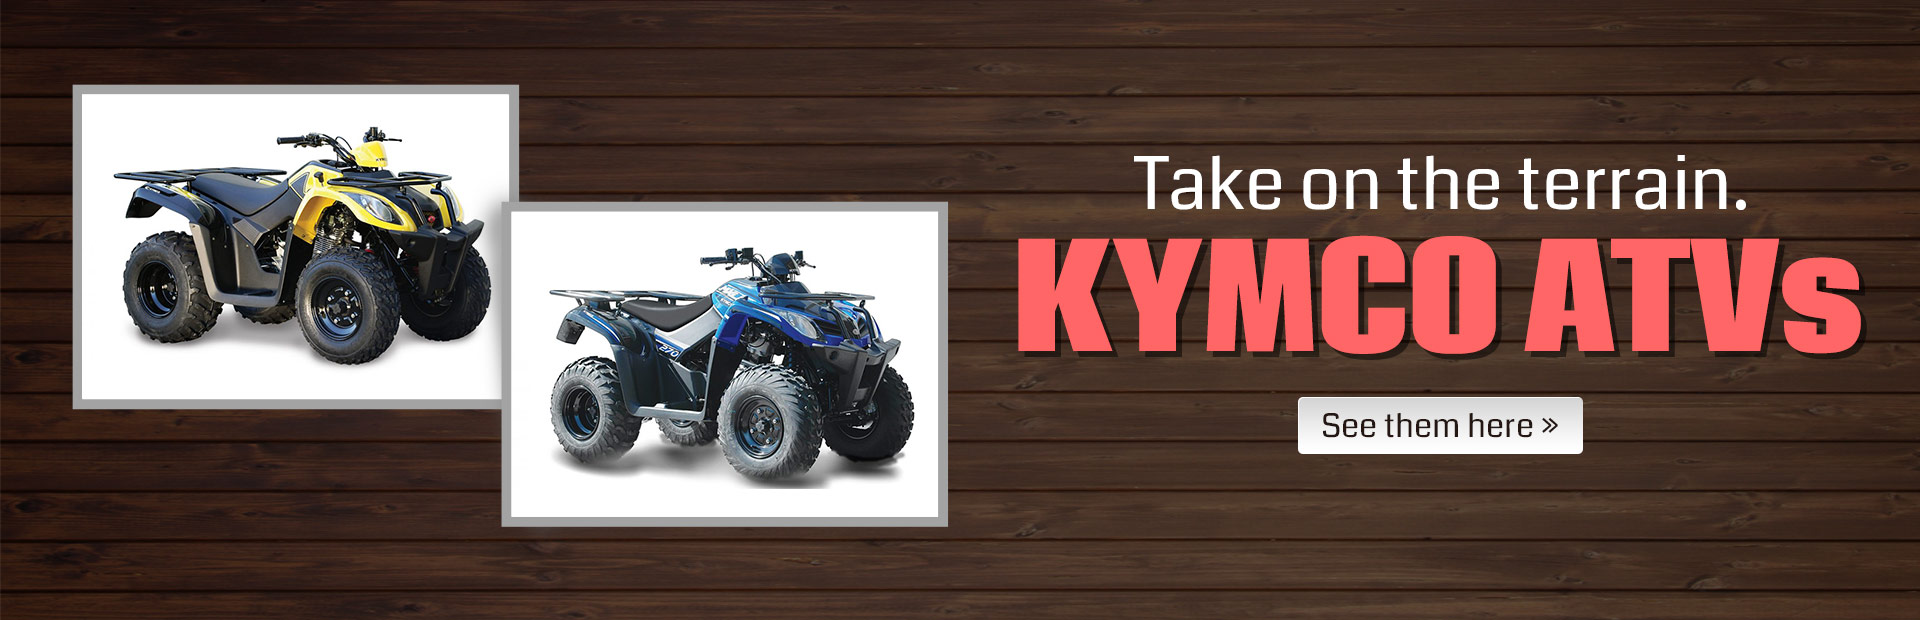 KYMCO ATVs: Click here to view the models.